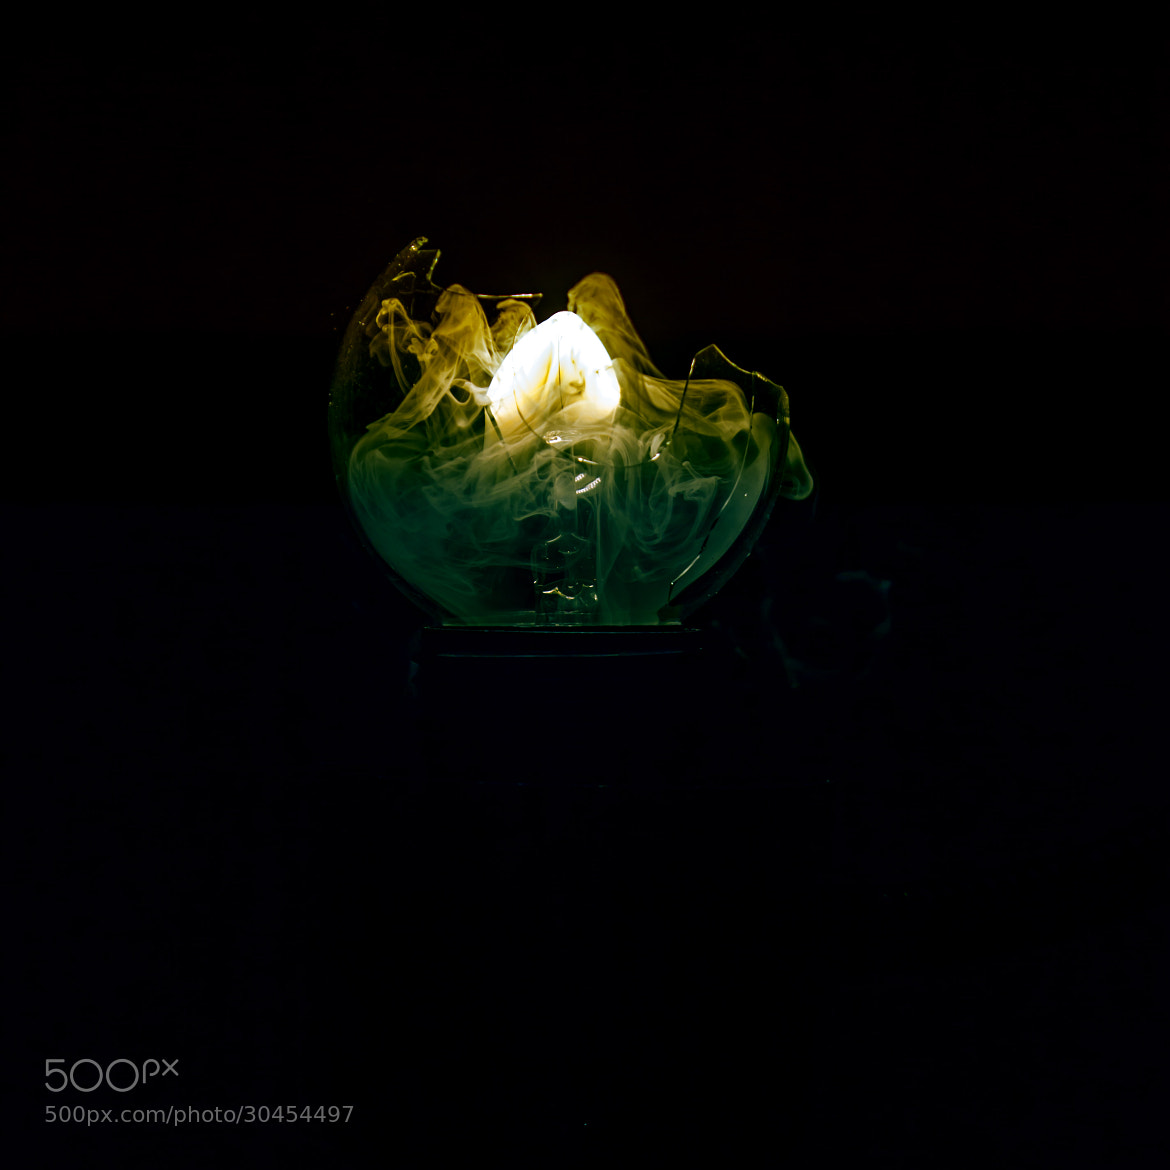 Photograph Burning lightbulb by Chris Meier on 500px